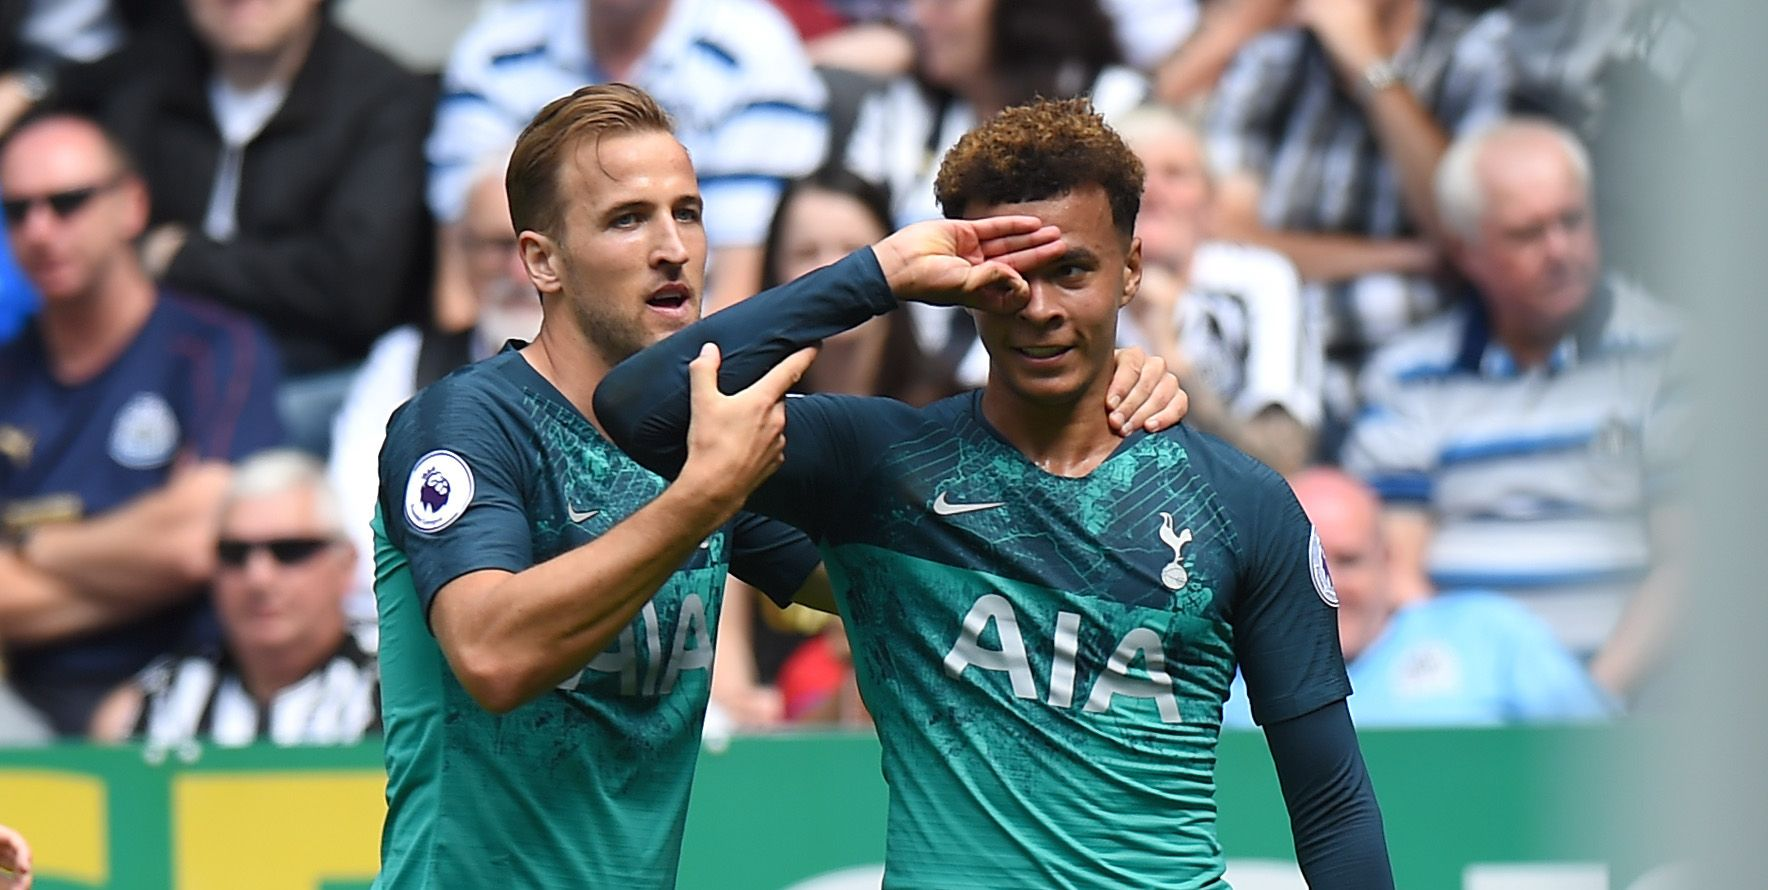 How To Do The Dele Alli Challenge, The Pose That's Ruined Every Photo This  Summer